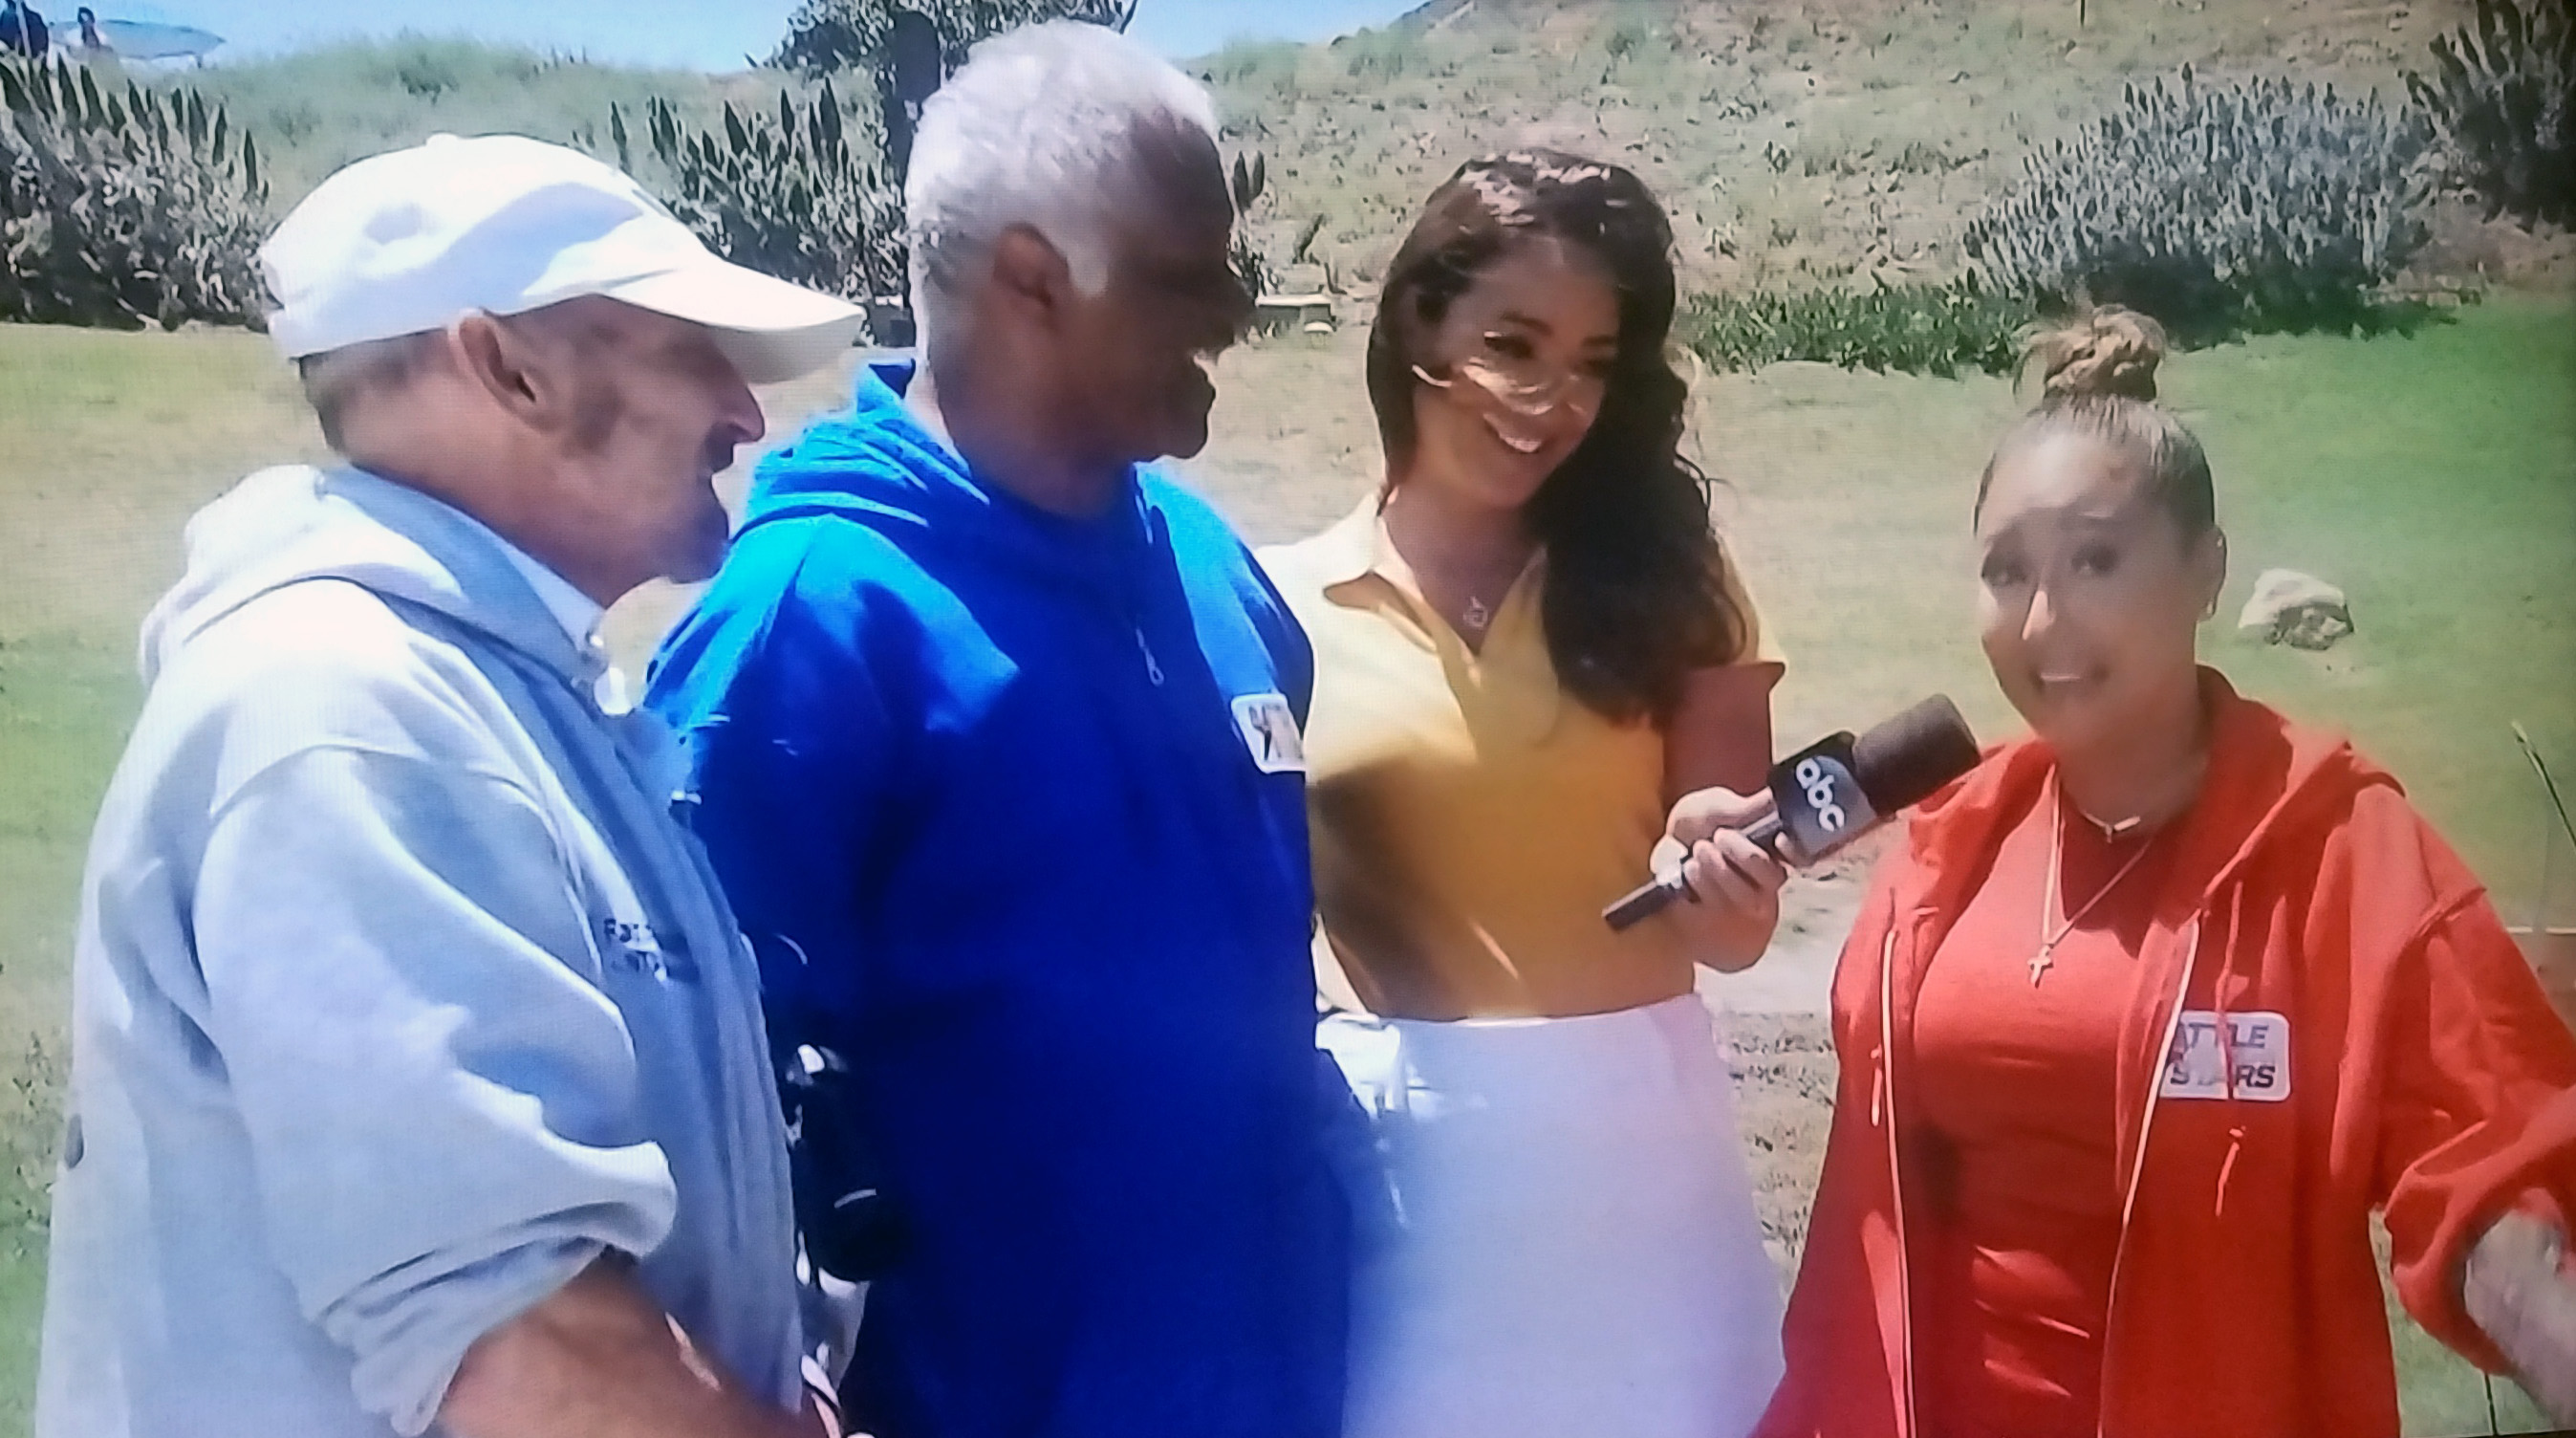 On ABC –TV's Battle of the Network Stars with Love Boat's Ted Lange -whom Paul coached to victory - along with interviewer Cassidy Hubbarth and Adrienne Houghton (of Cheetah Girls).  Aired on Thursday, August 24, 2017